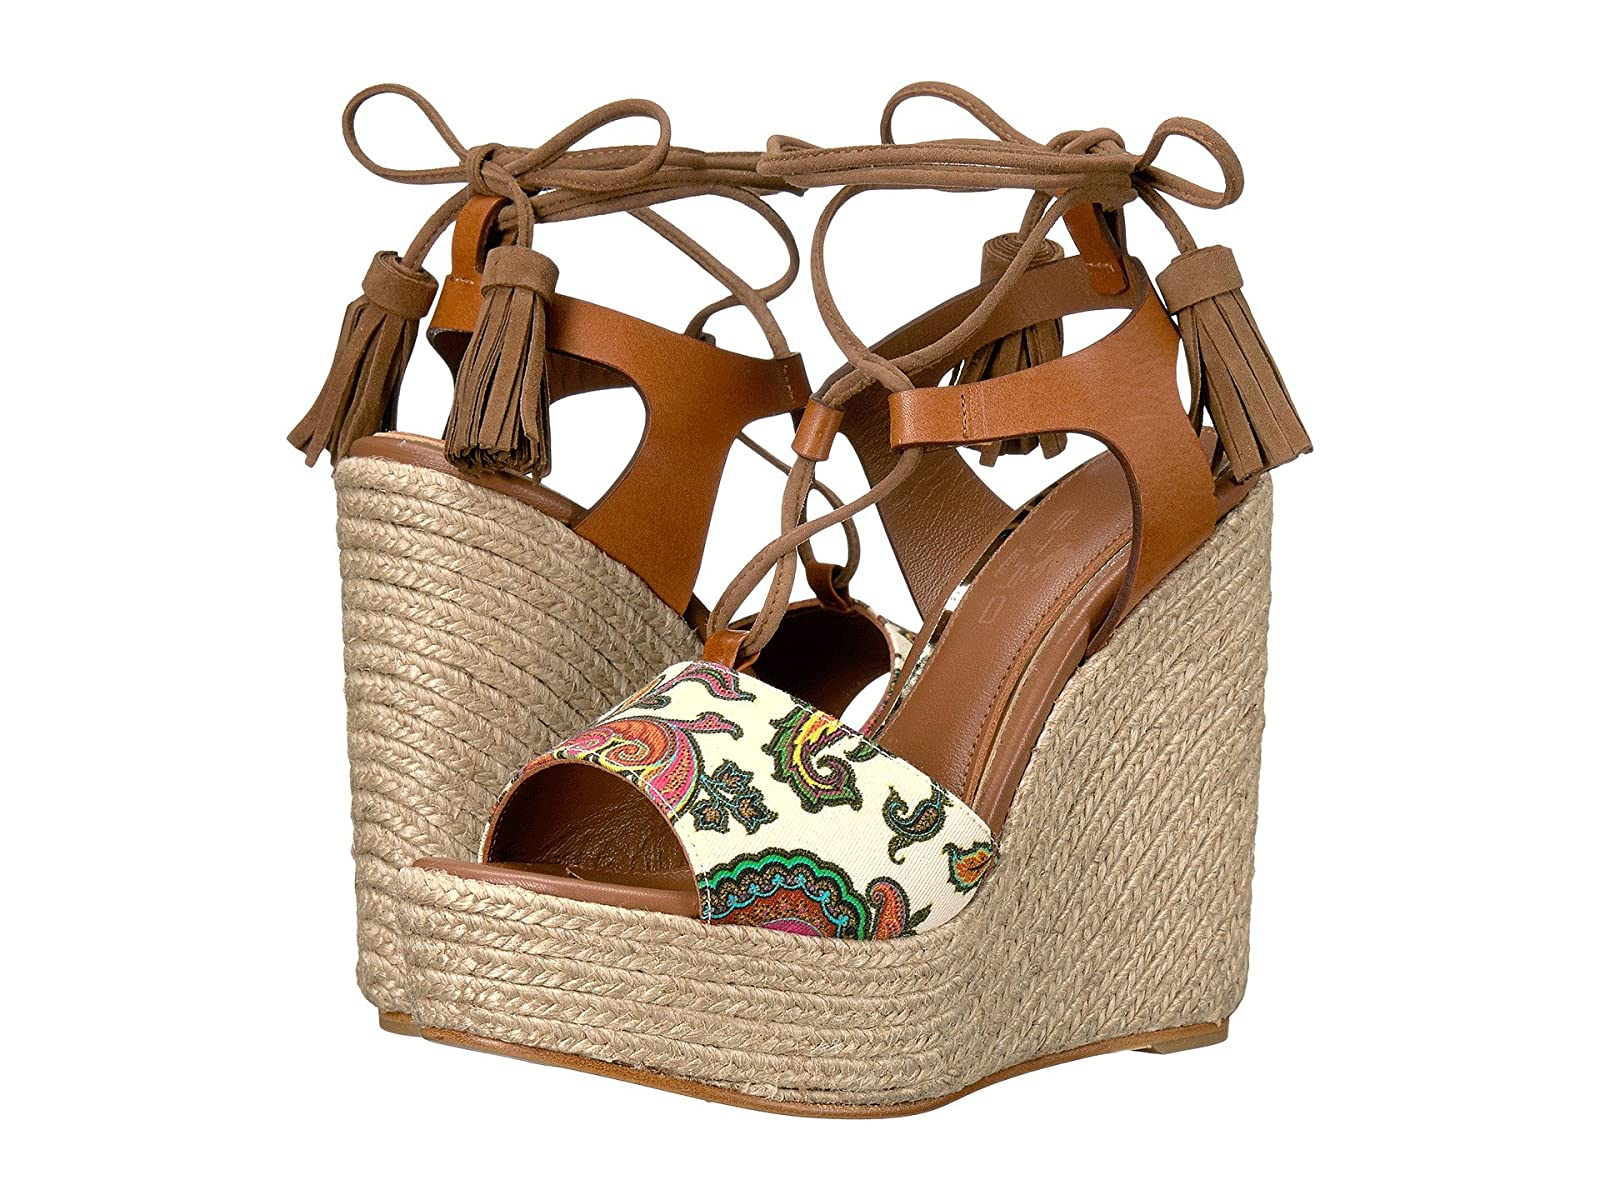 Etro Paisley Wedge SandalCheap and distinctive eye-catching shoes